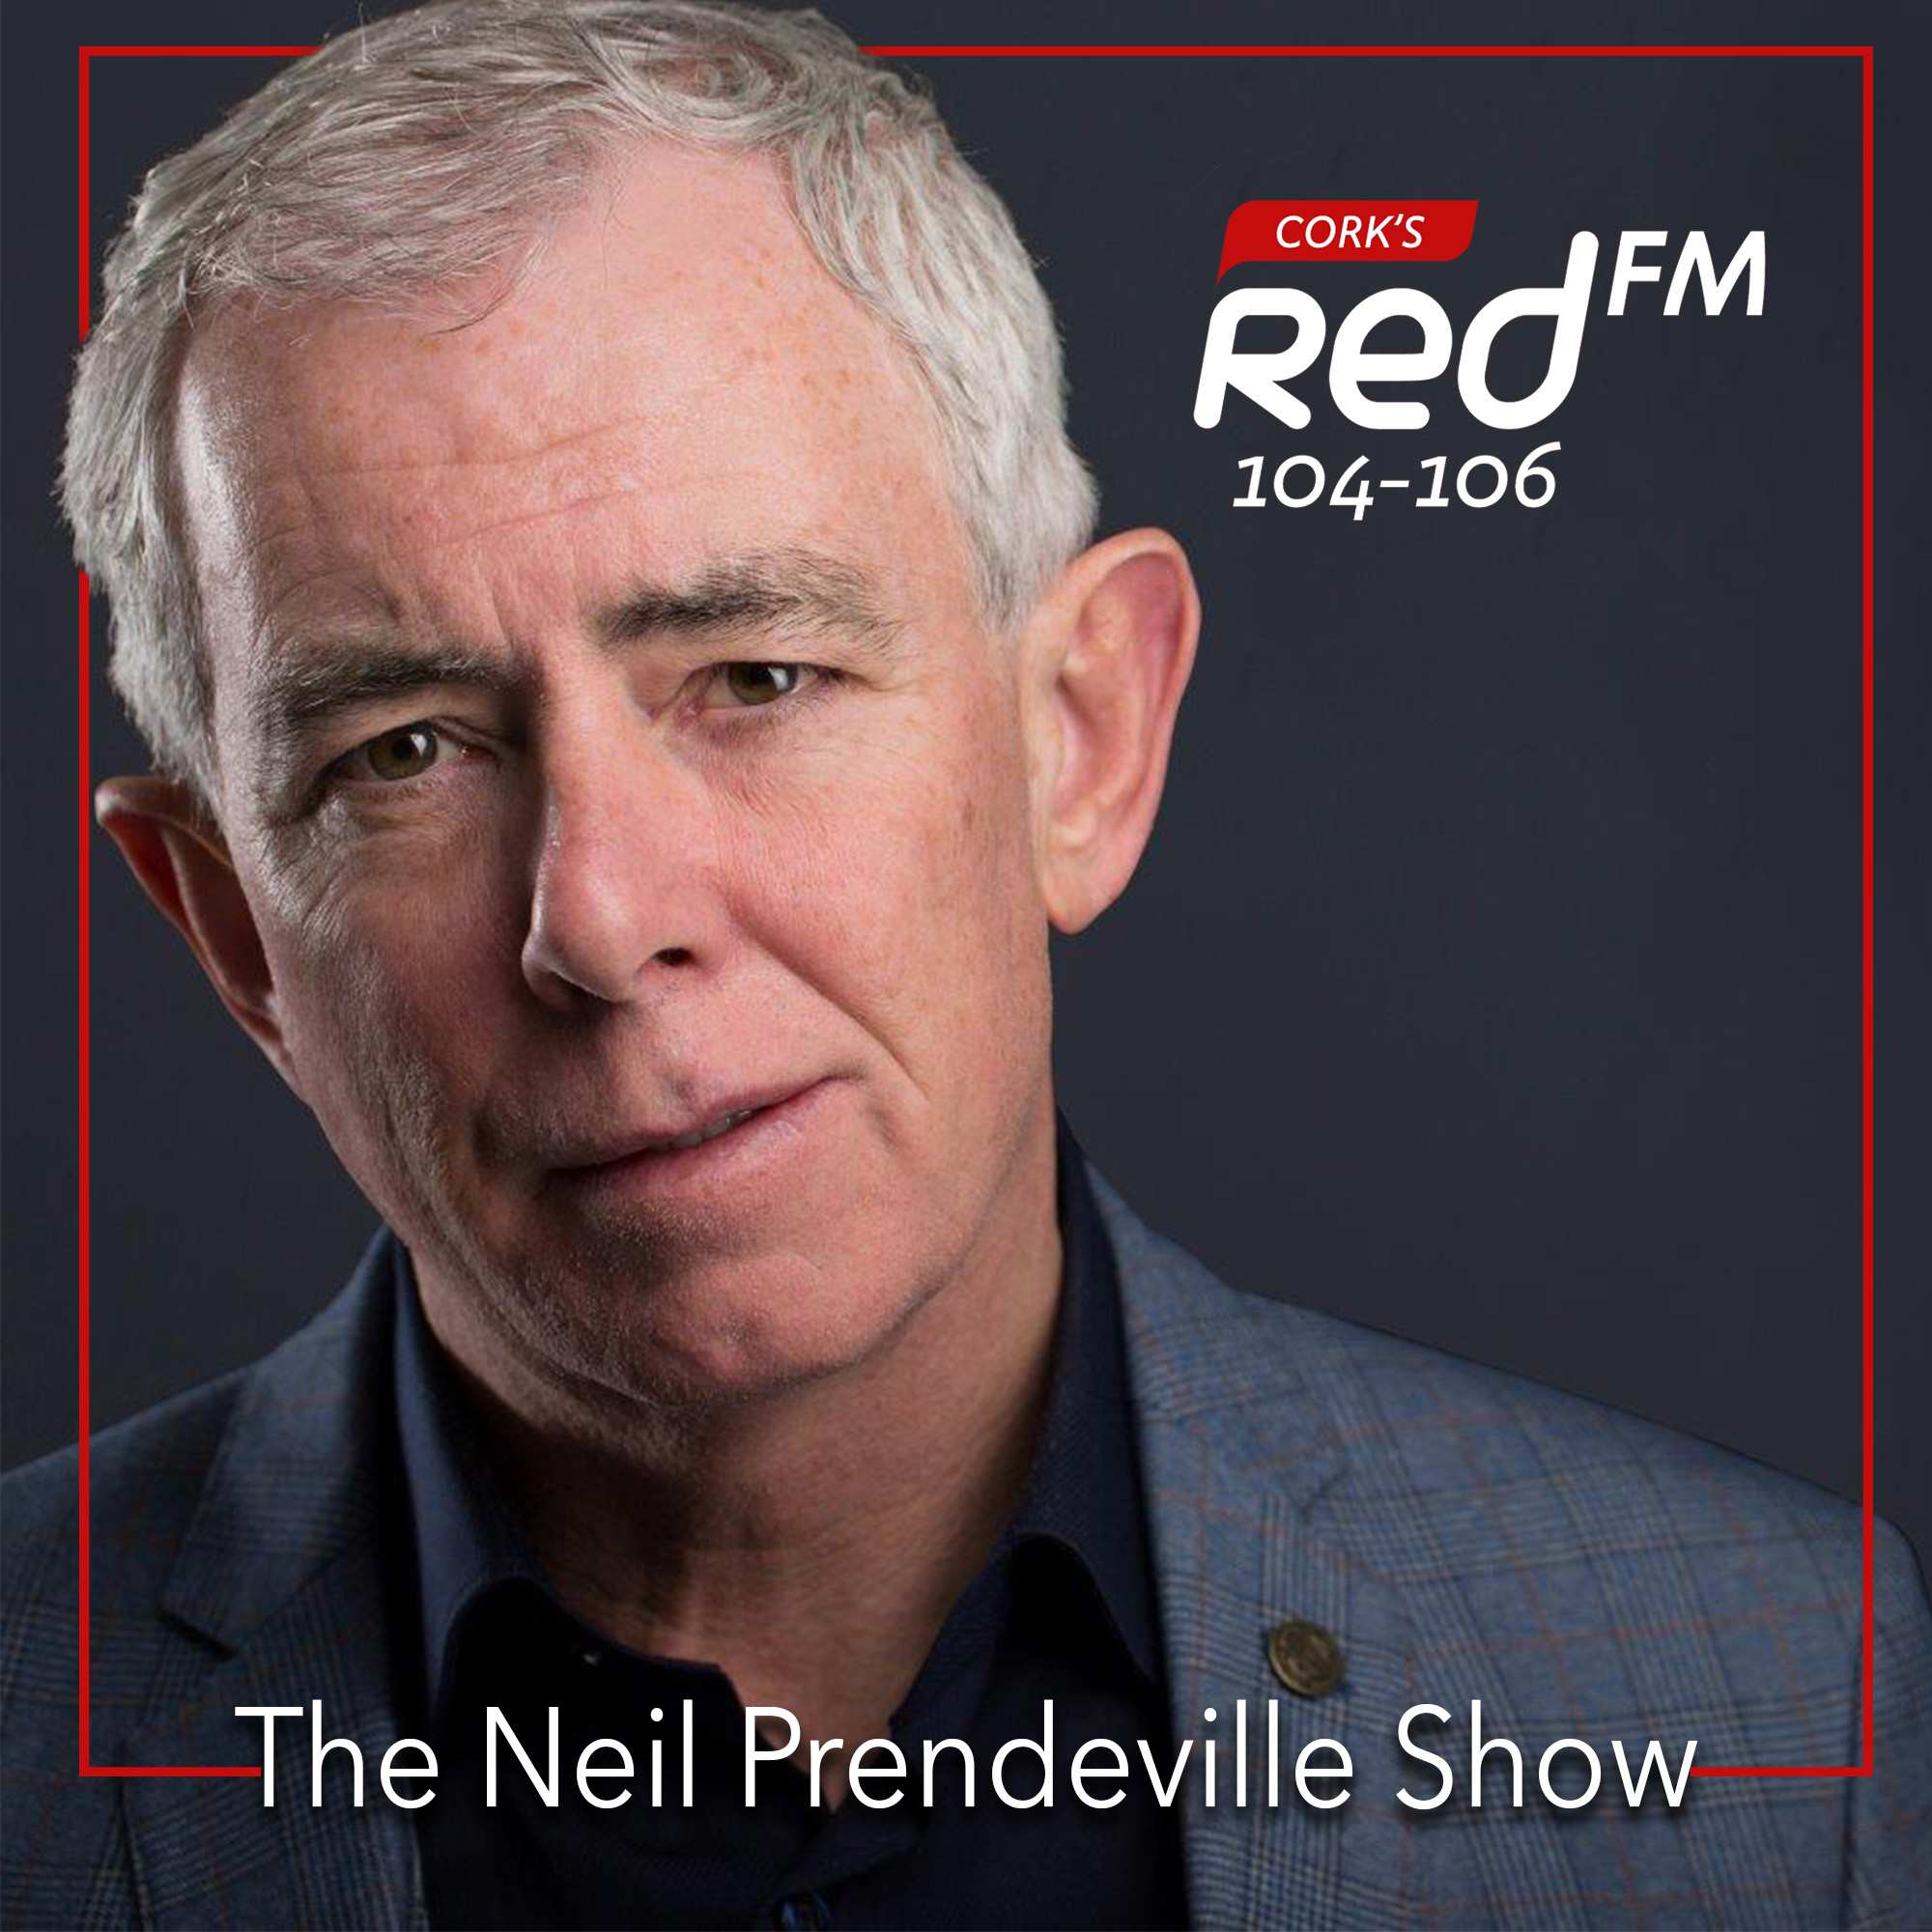 Image result for Neil prendeville show cork fm